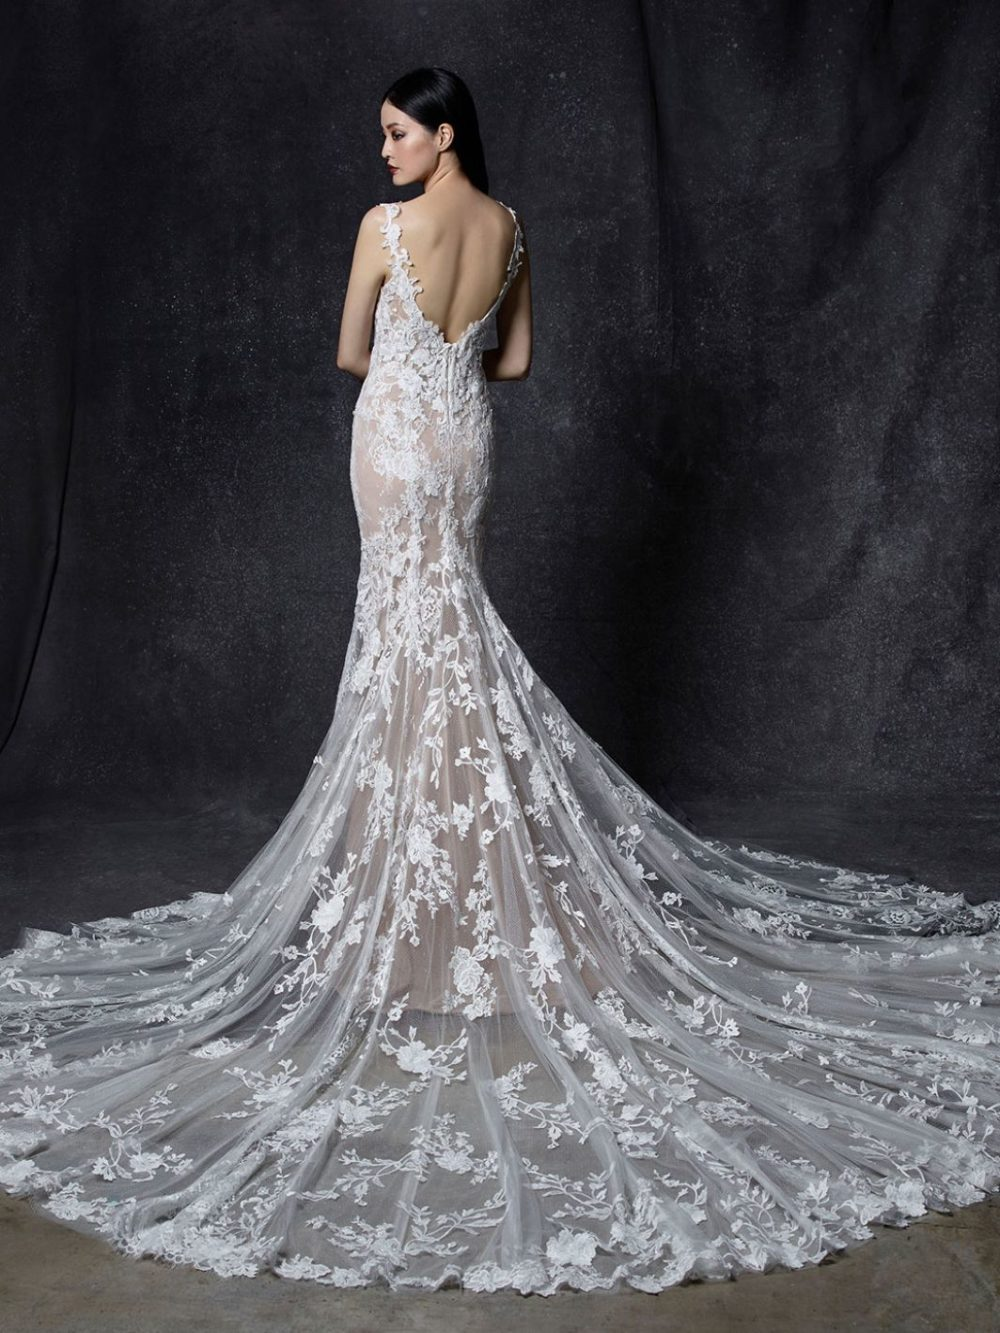 Odele by Enzoani Wedding gown dress back